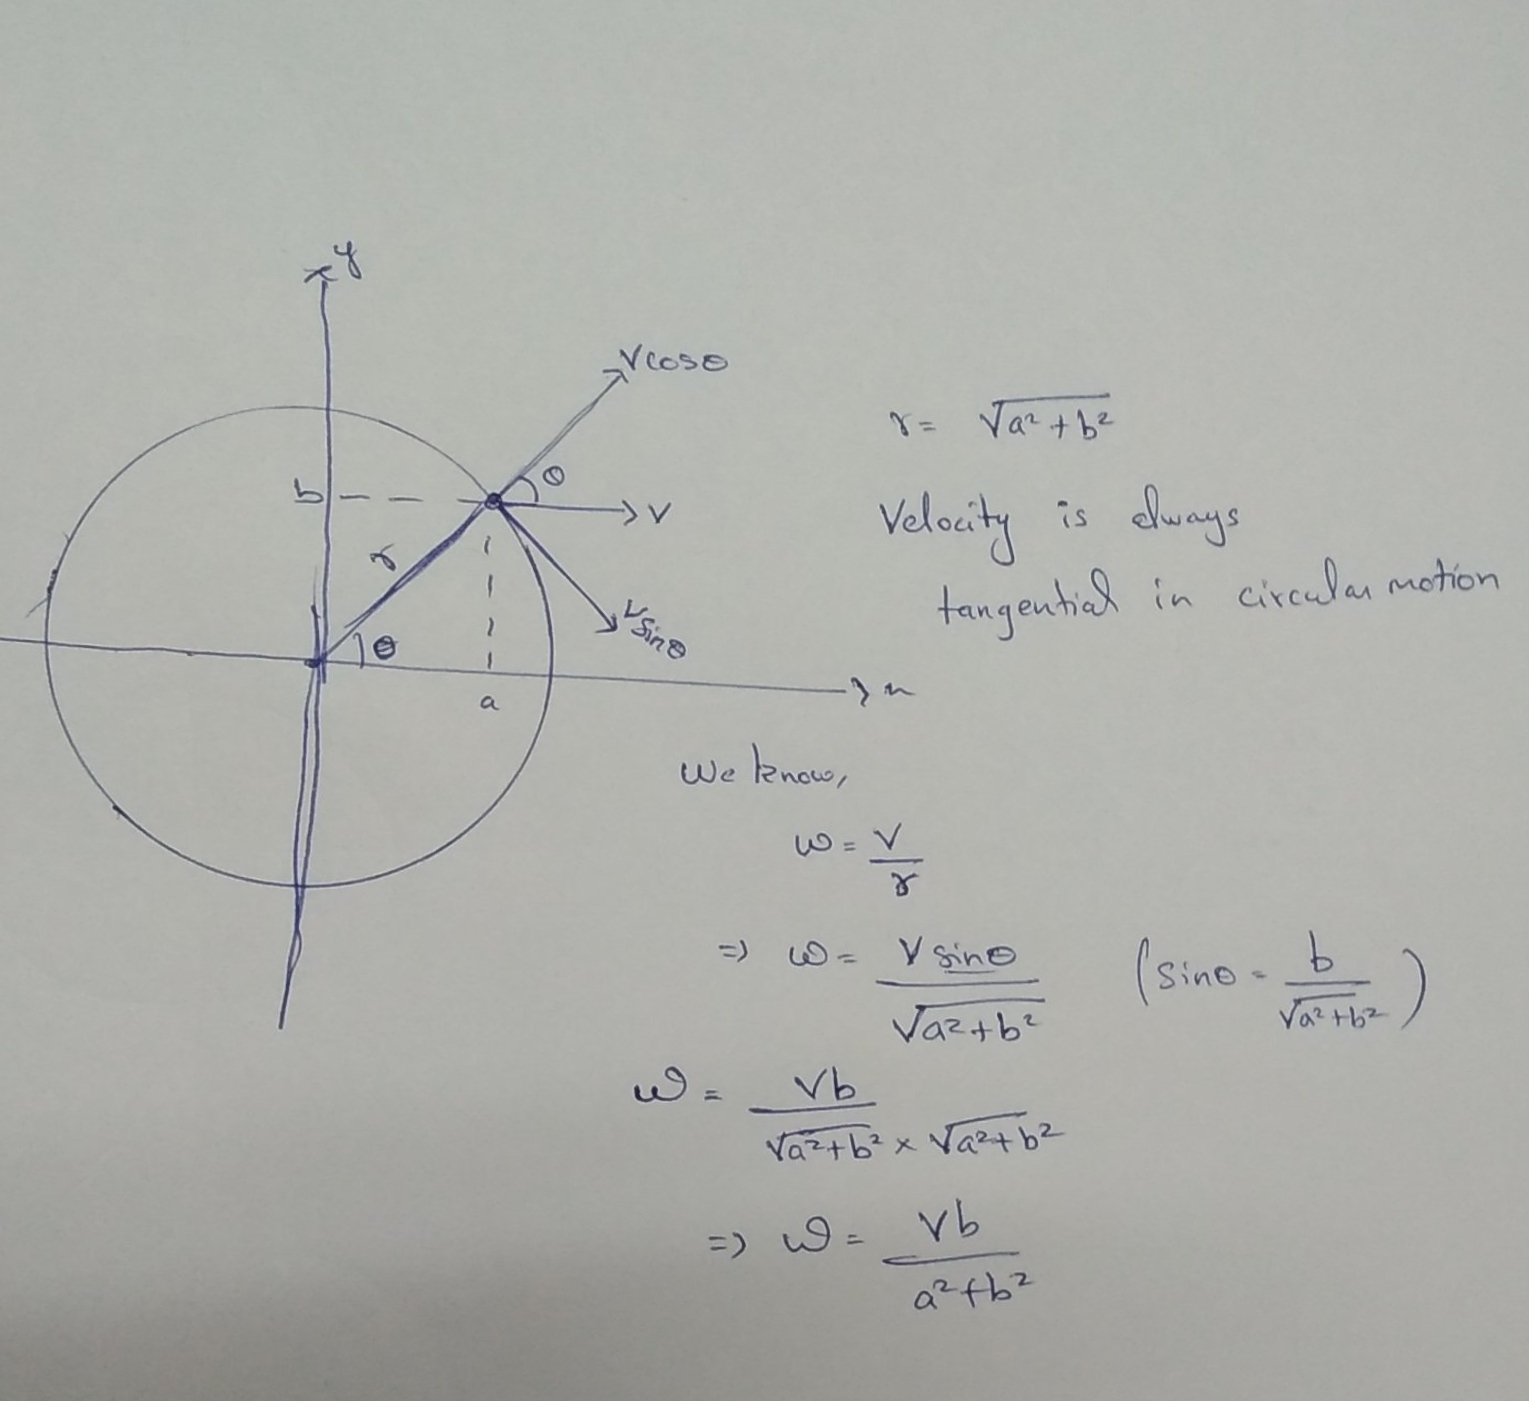 A particle is moving with constant speed V in xy plane as